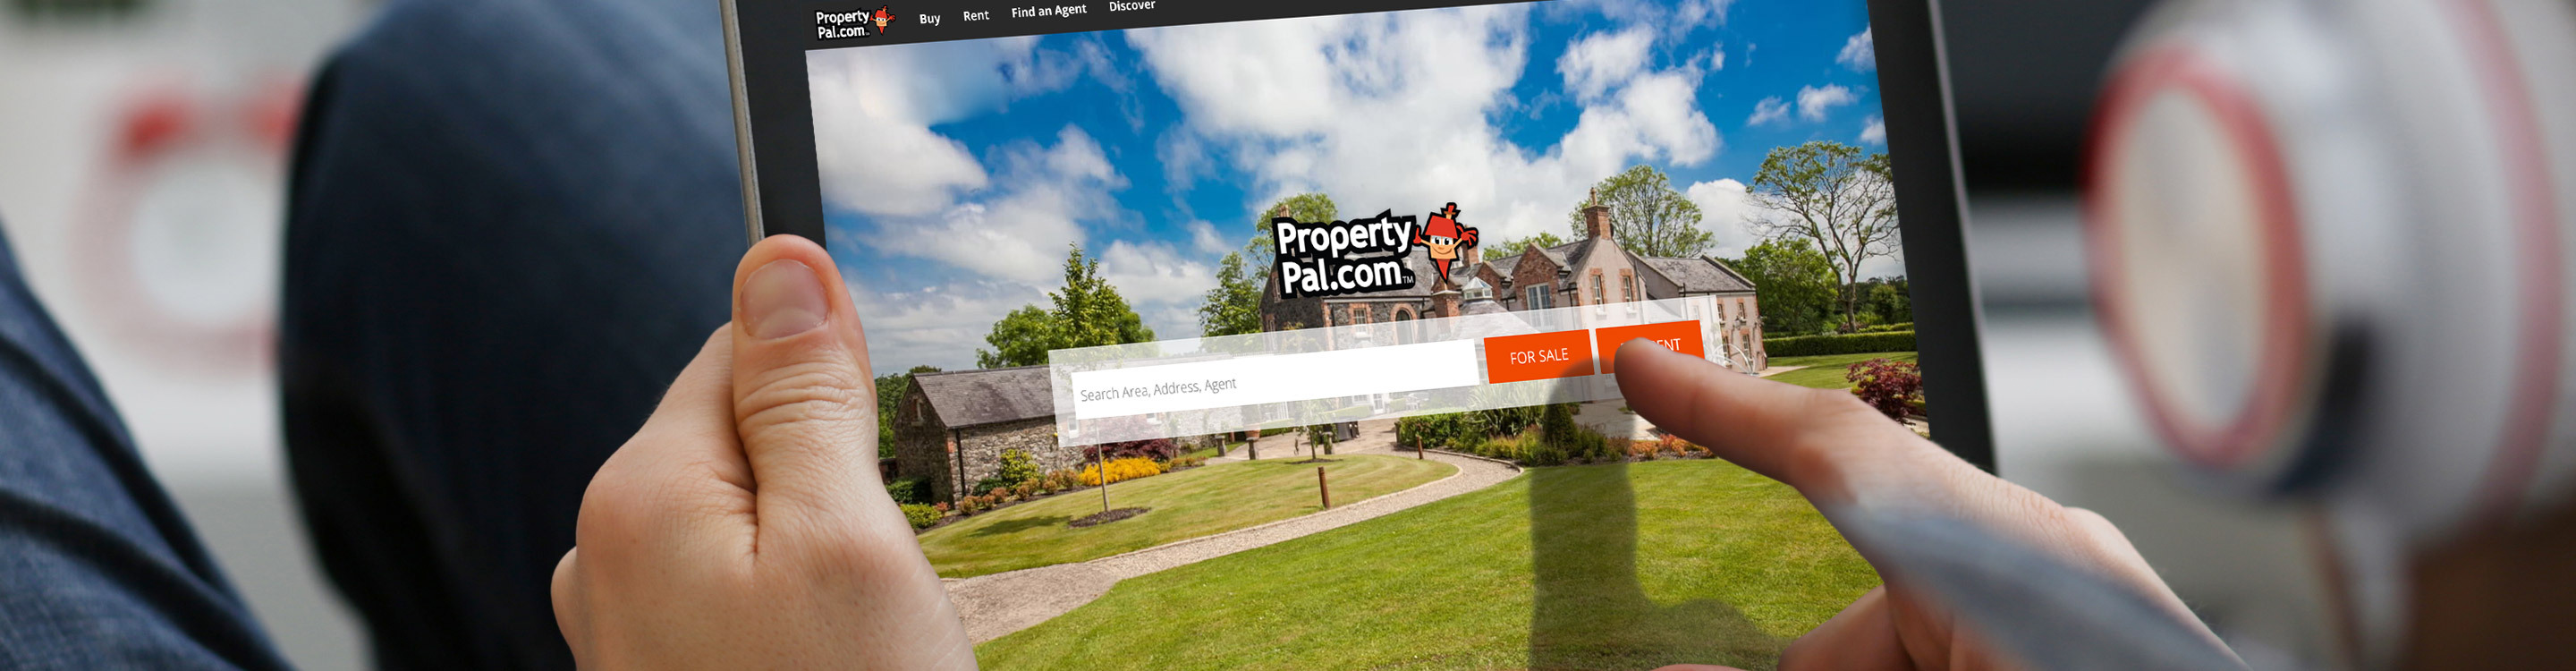 PropertyPal gains ground in Northern Ireland with Google Maps